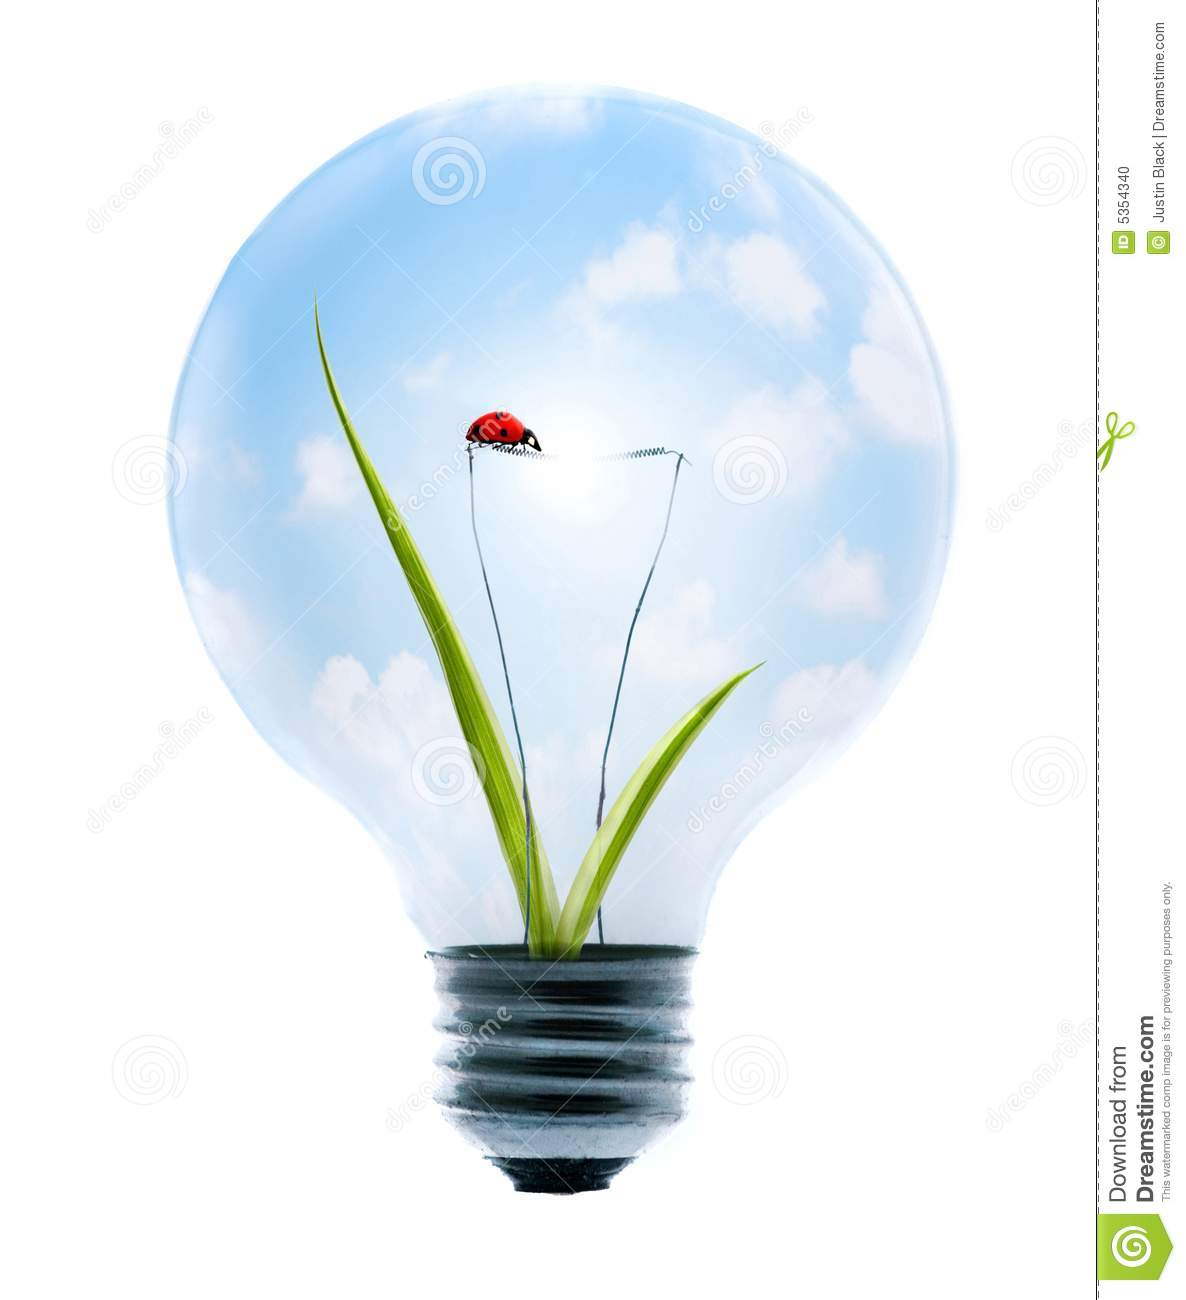 Clean energy, a light bulb with a bright sky, grass, and lady-bug.